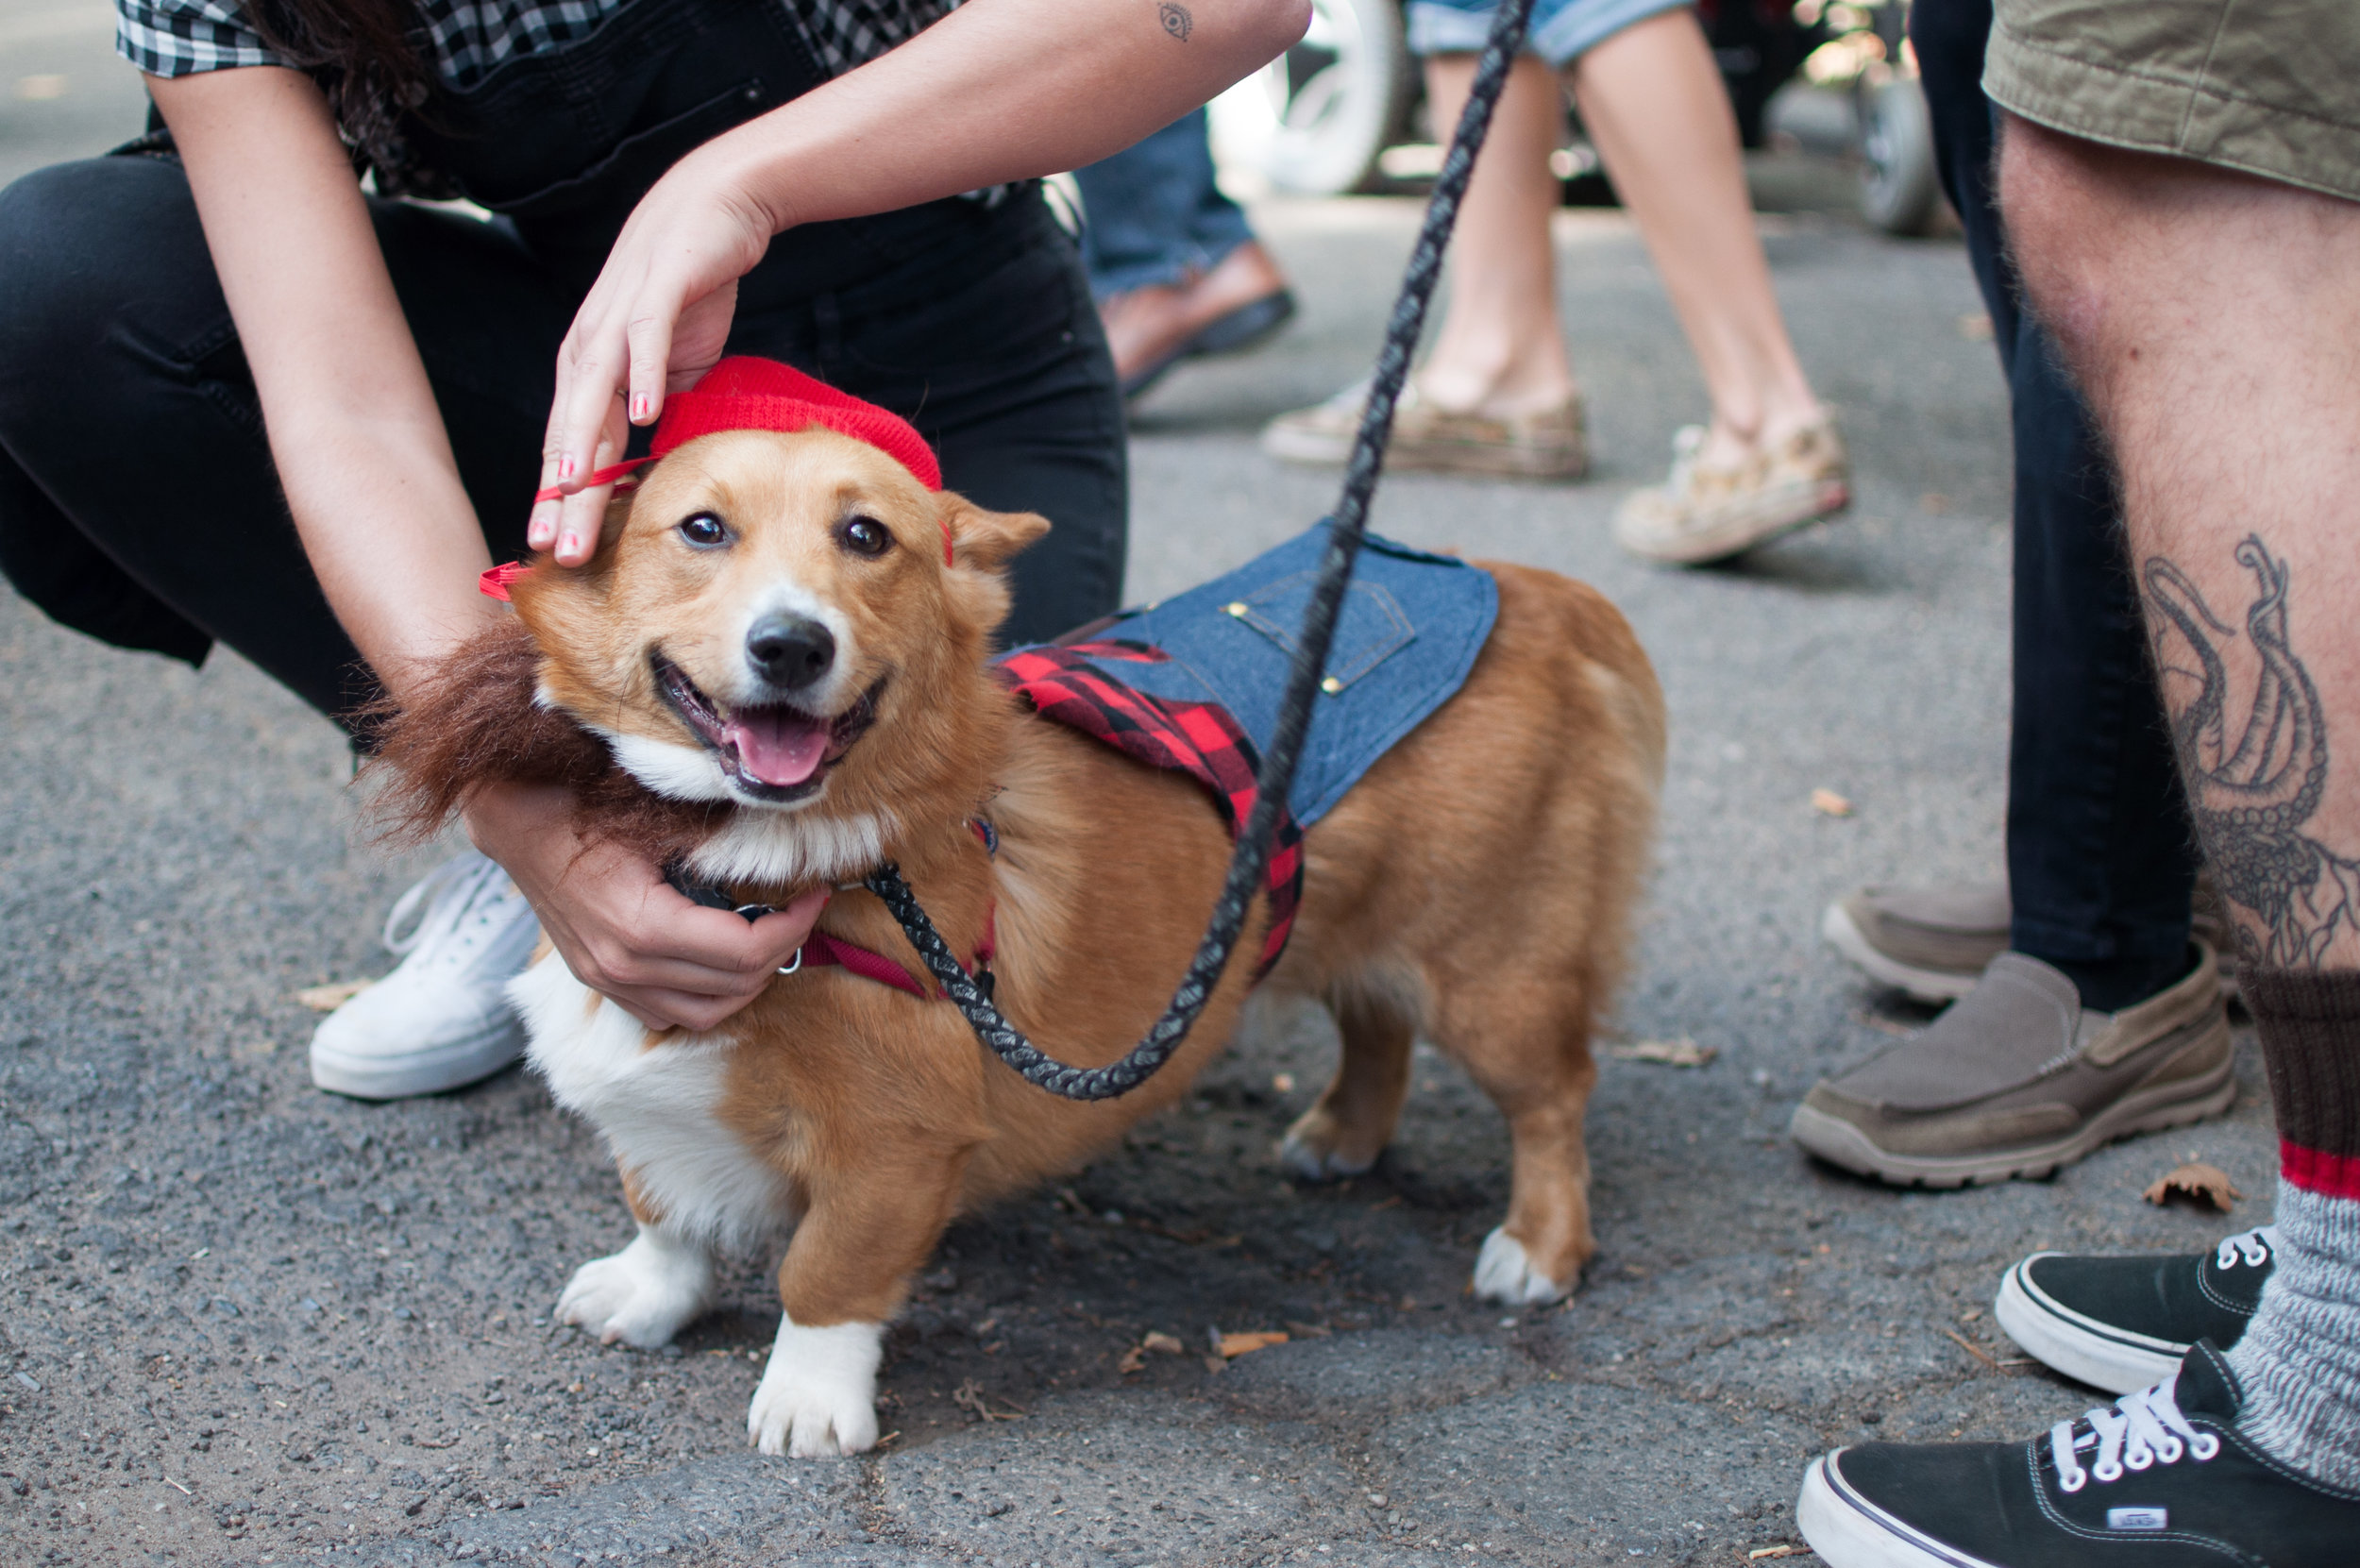 10.21.17_Tompkins Square Dog Parade-59.jpg